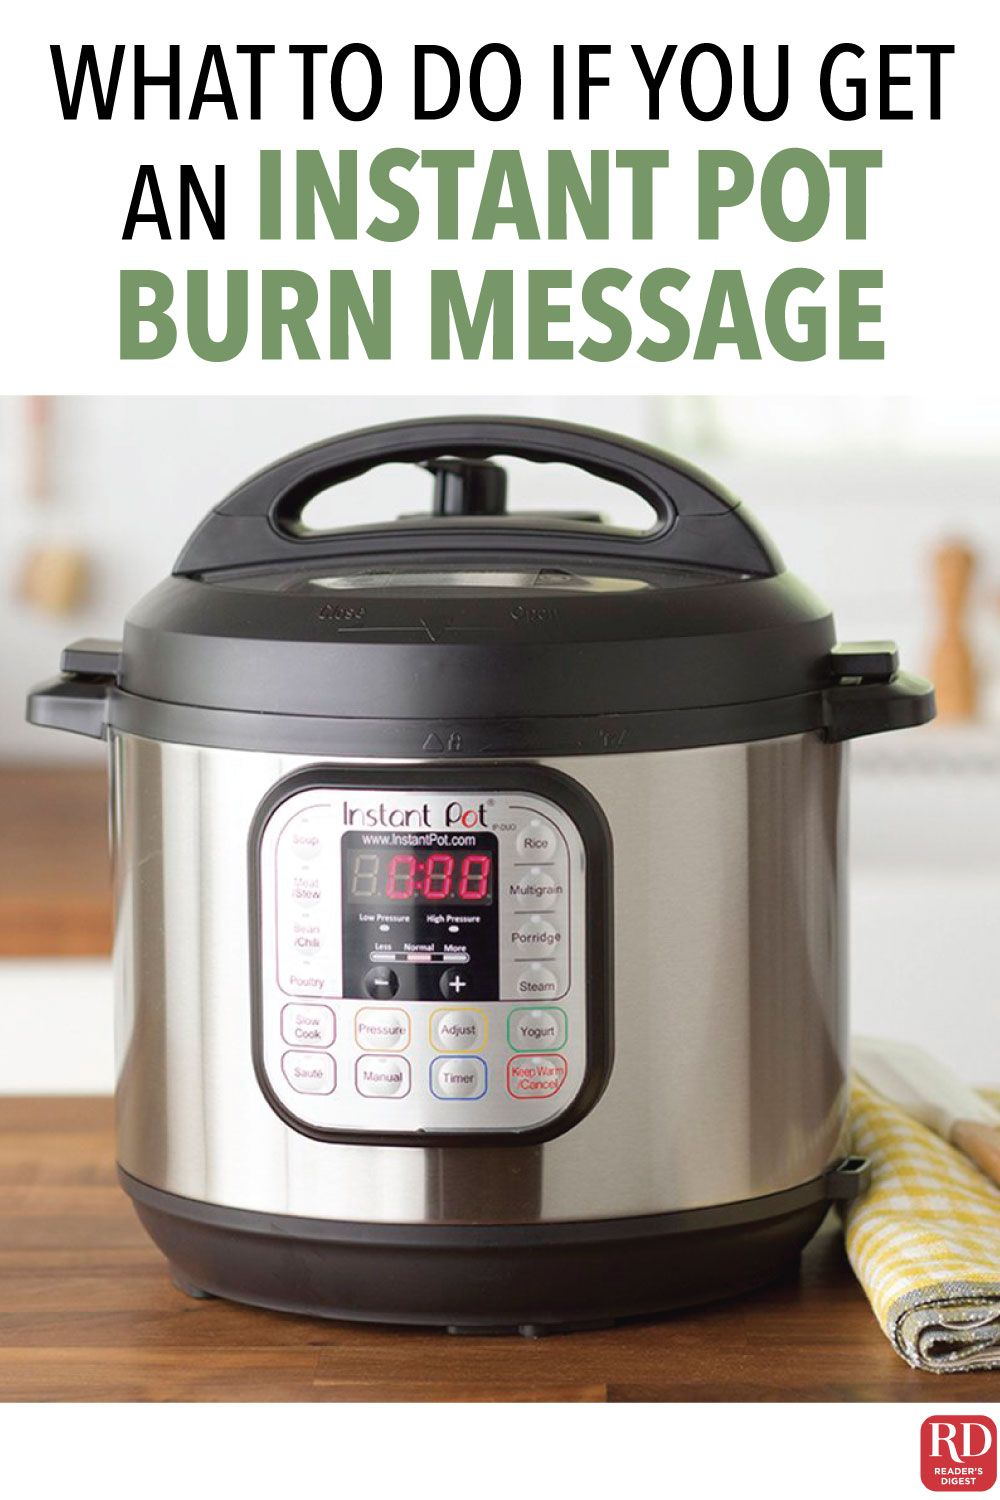 Getting an instant pot burn message heres what to do